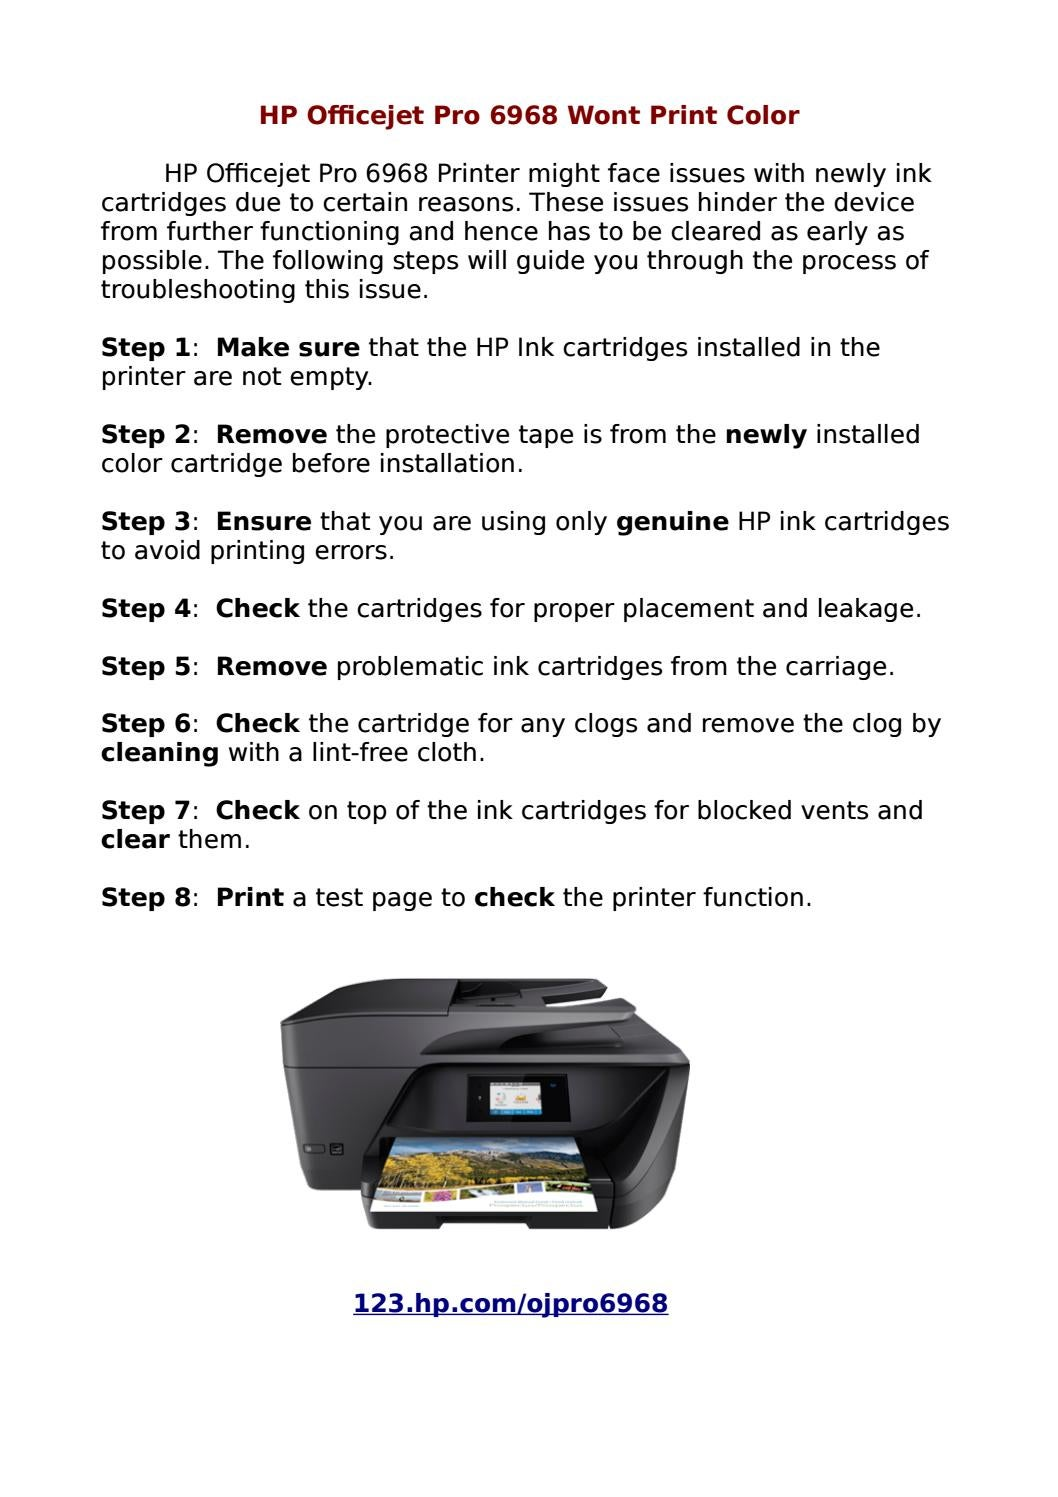 Instant Support for Troubleshooting HP Officejet Pro 6968 Printer by